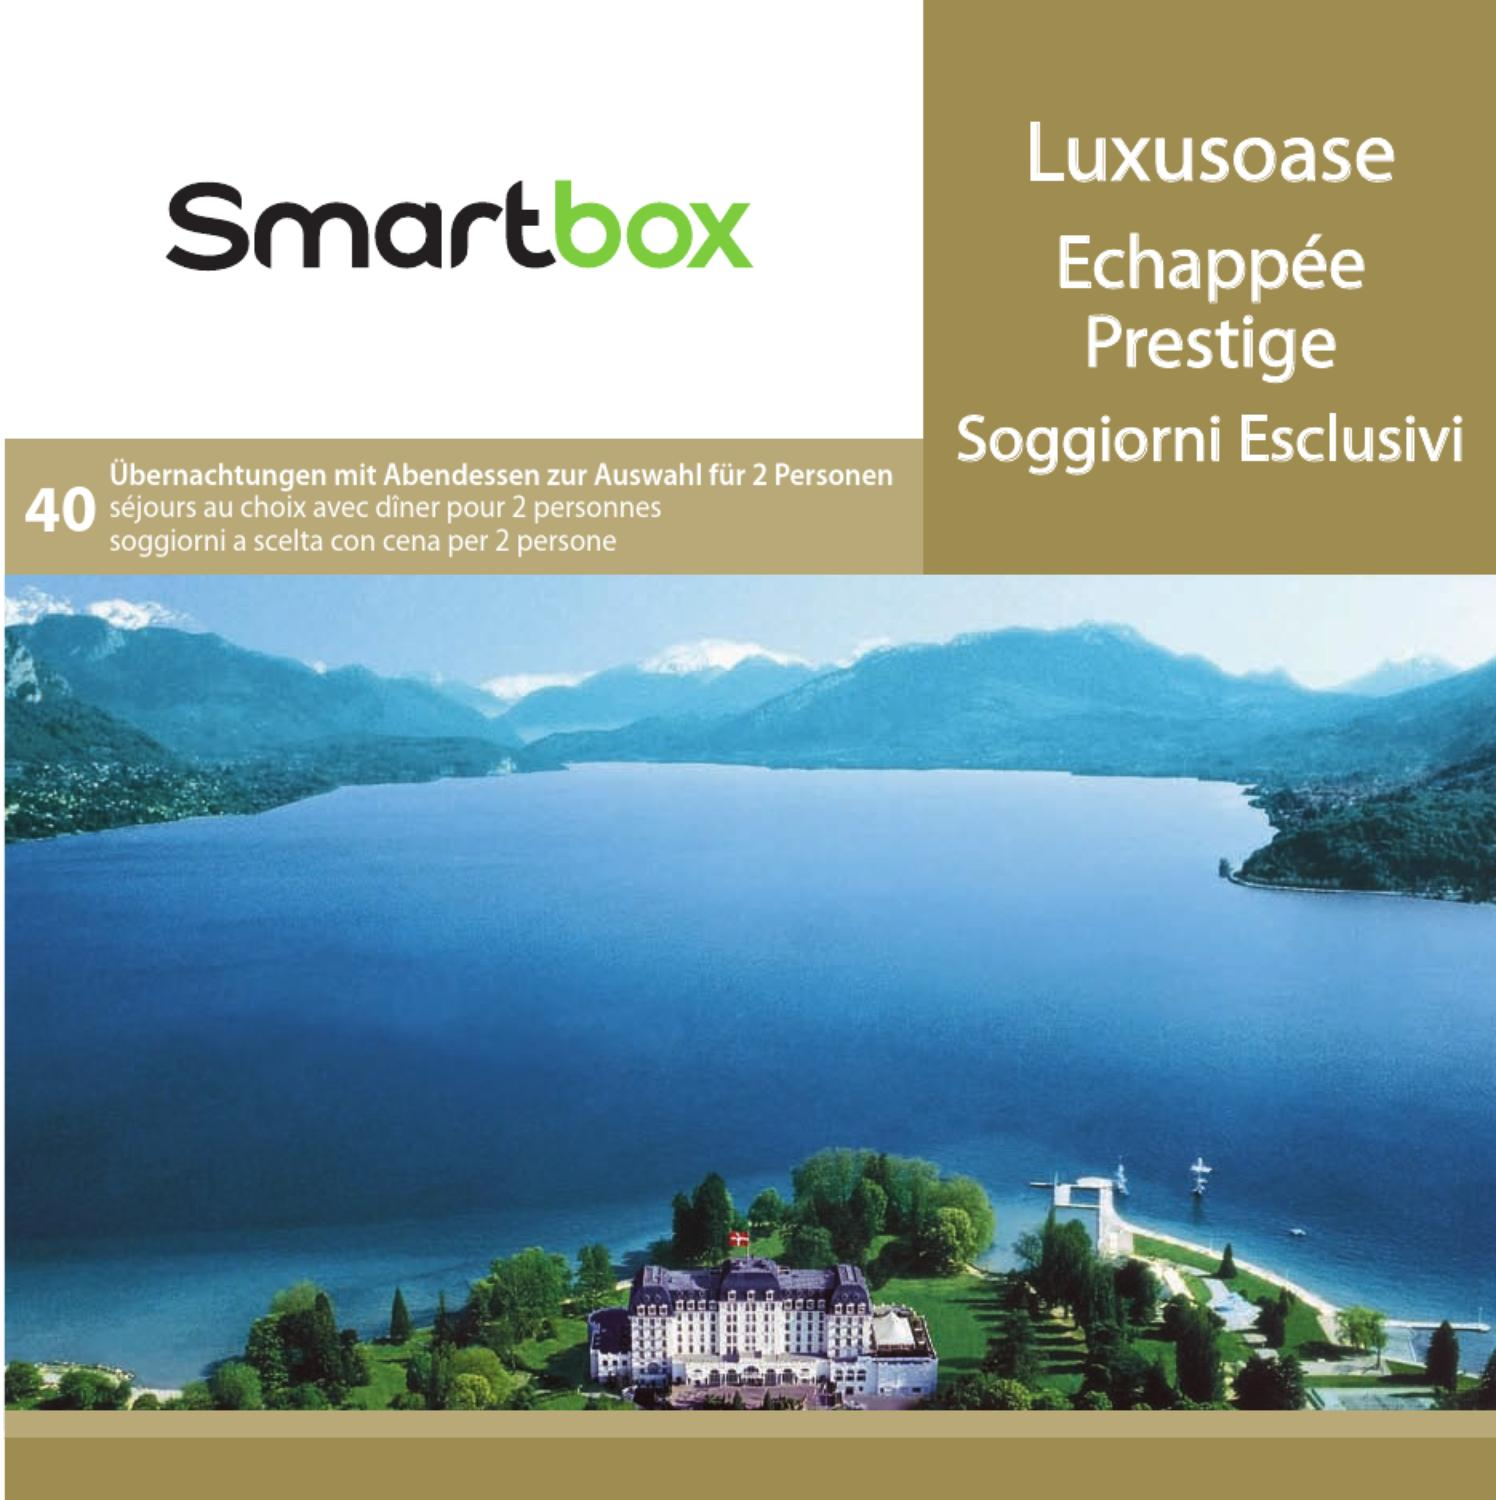 Smartbox Echappée prestige by technomag-ch - issuu